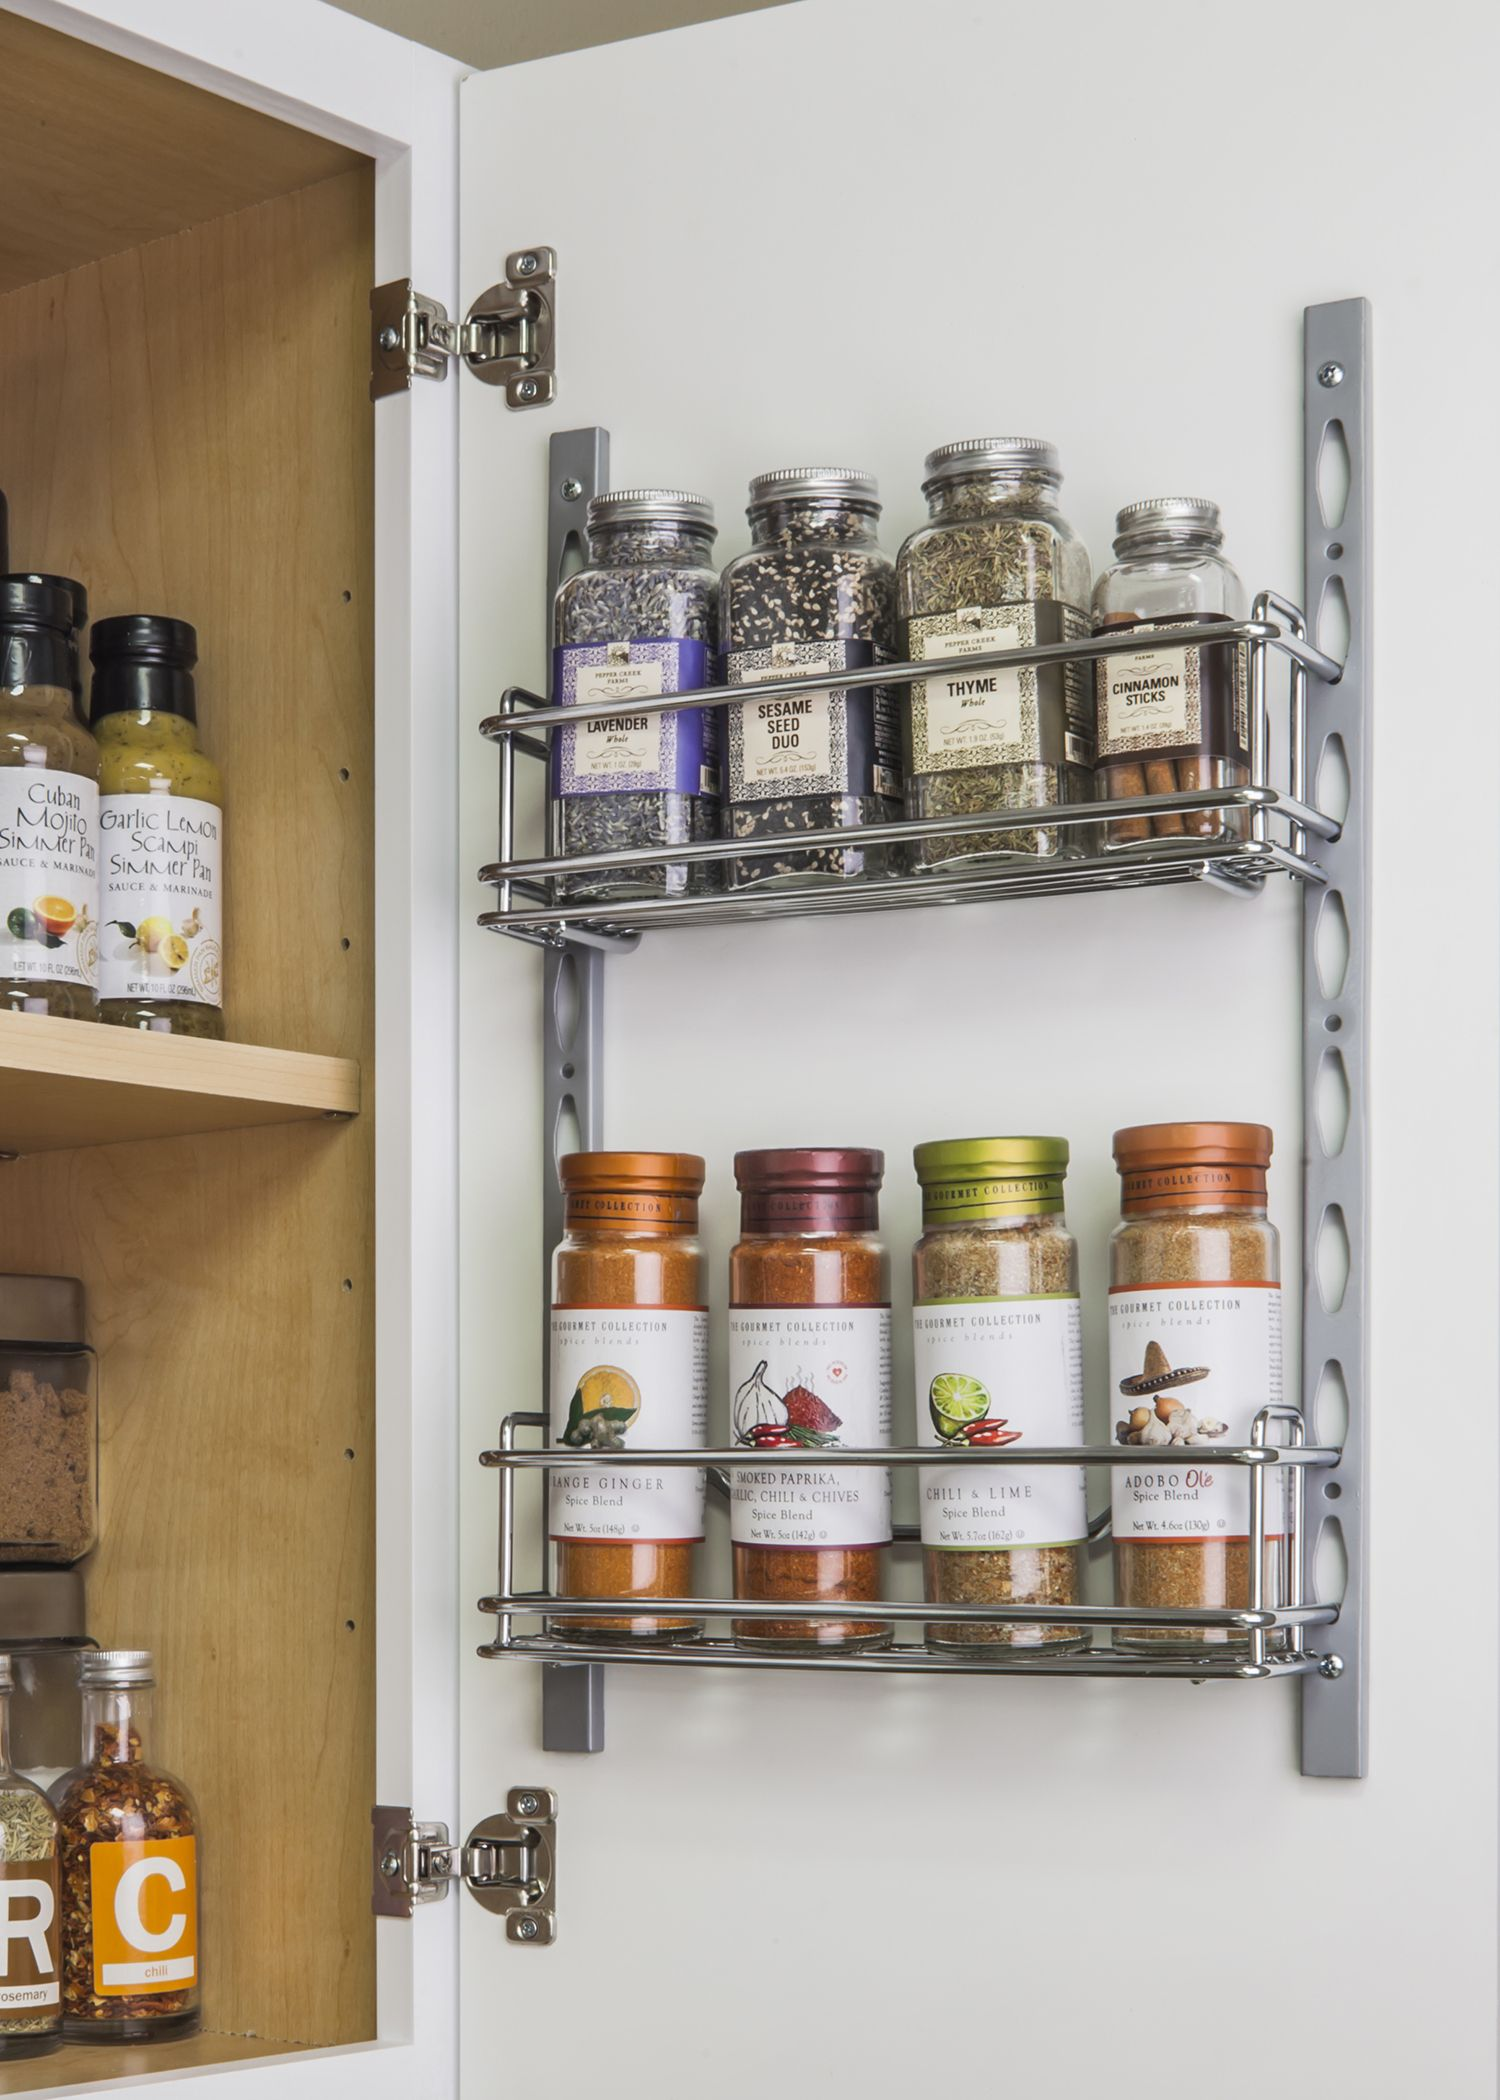 Organize Your Kitchen In 11 Minutes Or Less Easy Install Door Mounted Tray System Great For O Door Mounted Spice Rack Cabinets Organization Hardware Resources